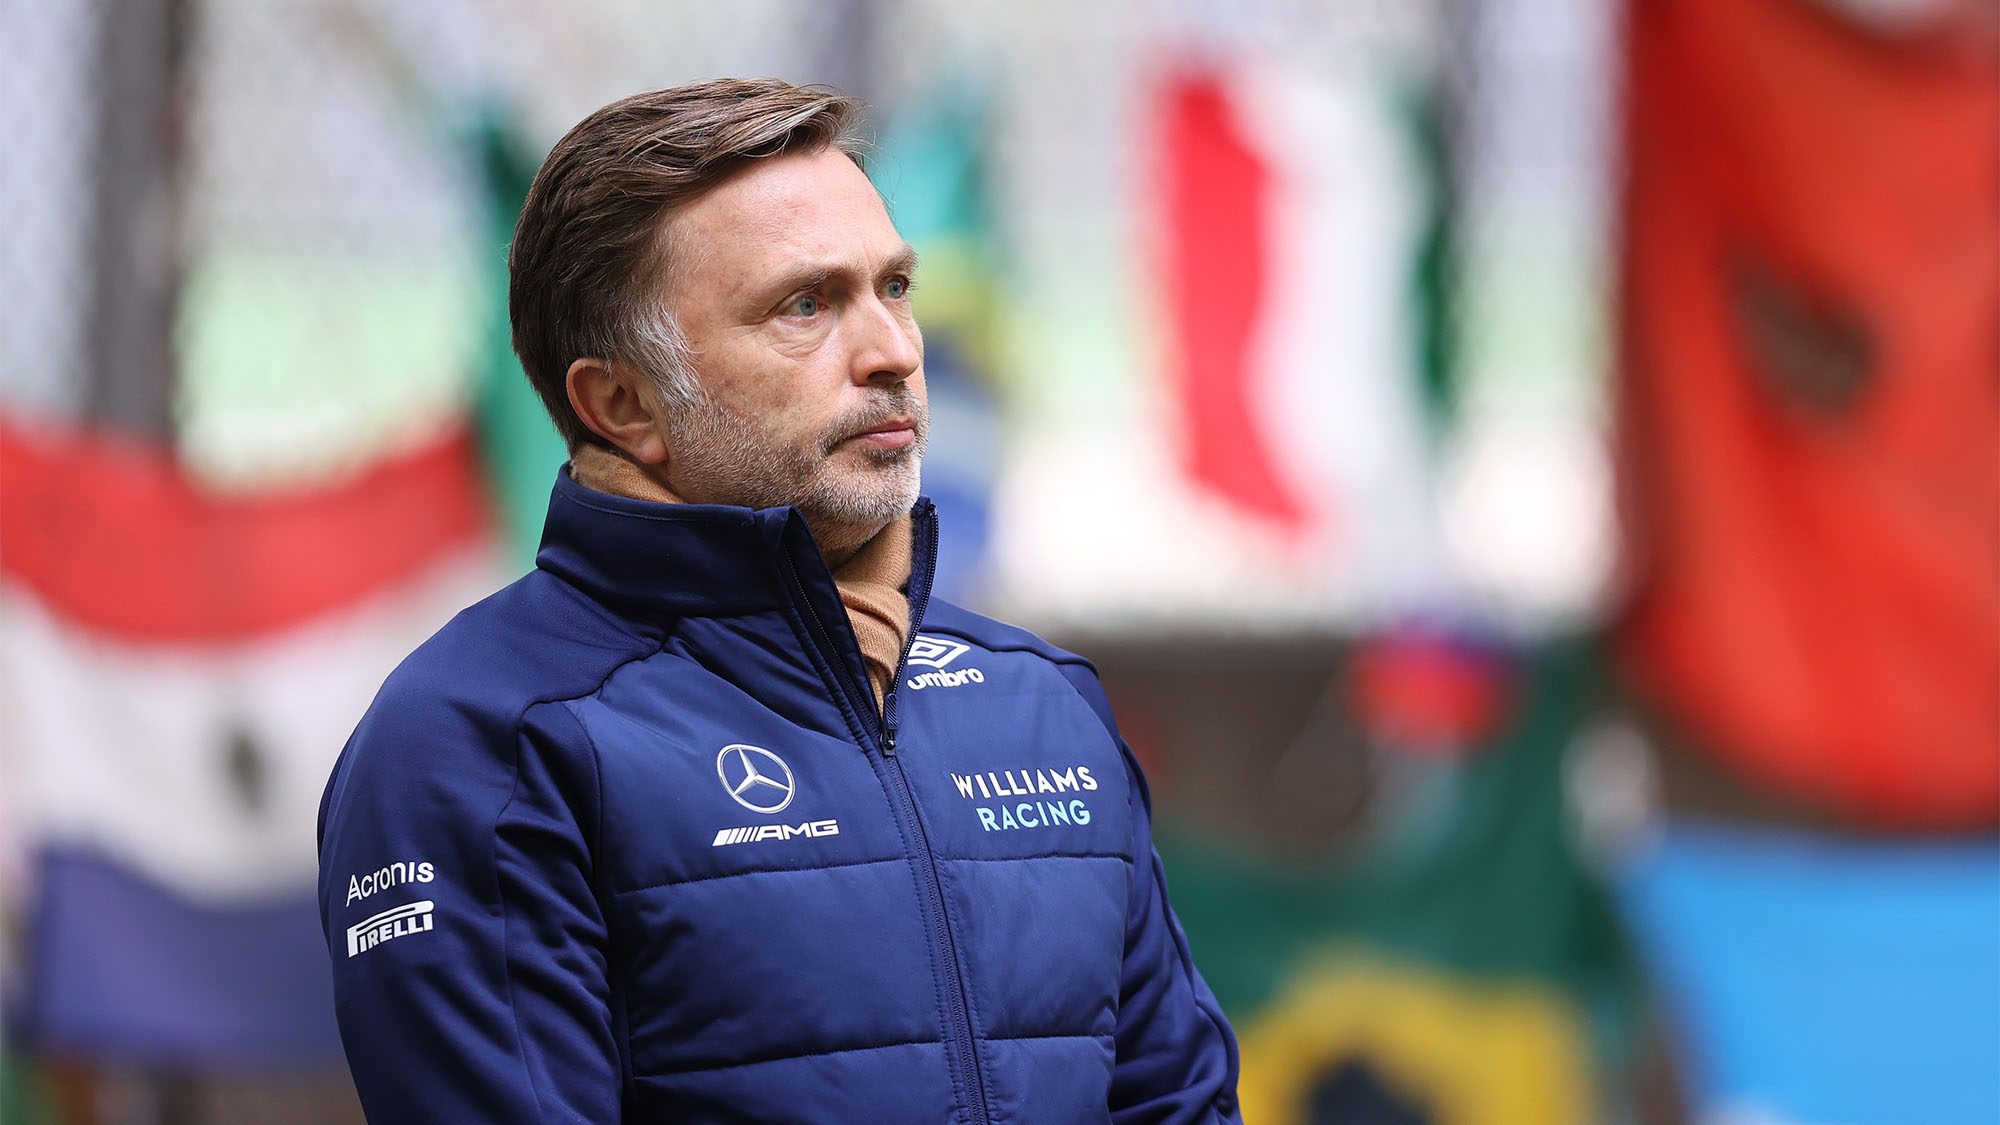 IMOLA, ITALY - APRIL 15: Jost Capito, Chief Executive Officer of Williams Racing looks at the Ayrton Senna memorial during previews ahead of the F1 Grand Prix of Emilia Romagna at Autodromo Enzo e Dino Ferrari on April 15, 2021 in Imola, Italy. (Photo by Lars Baron/Getty Images)